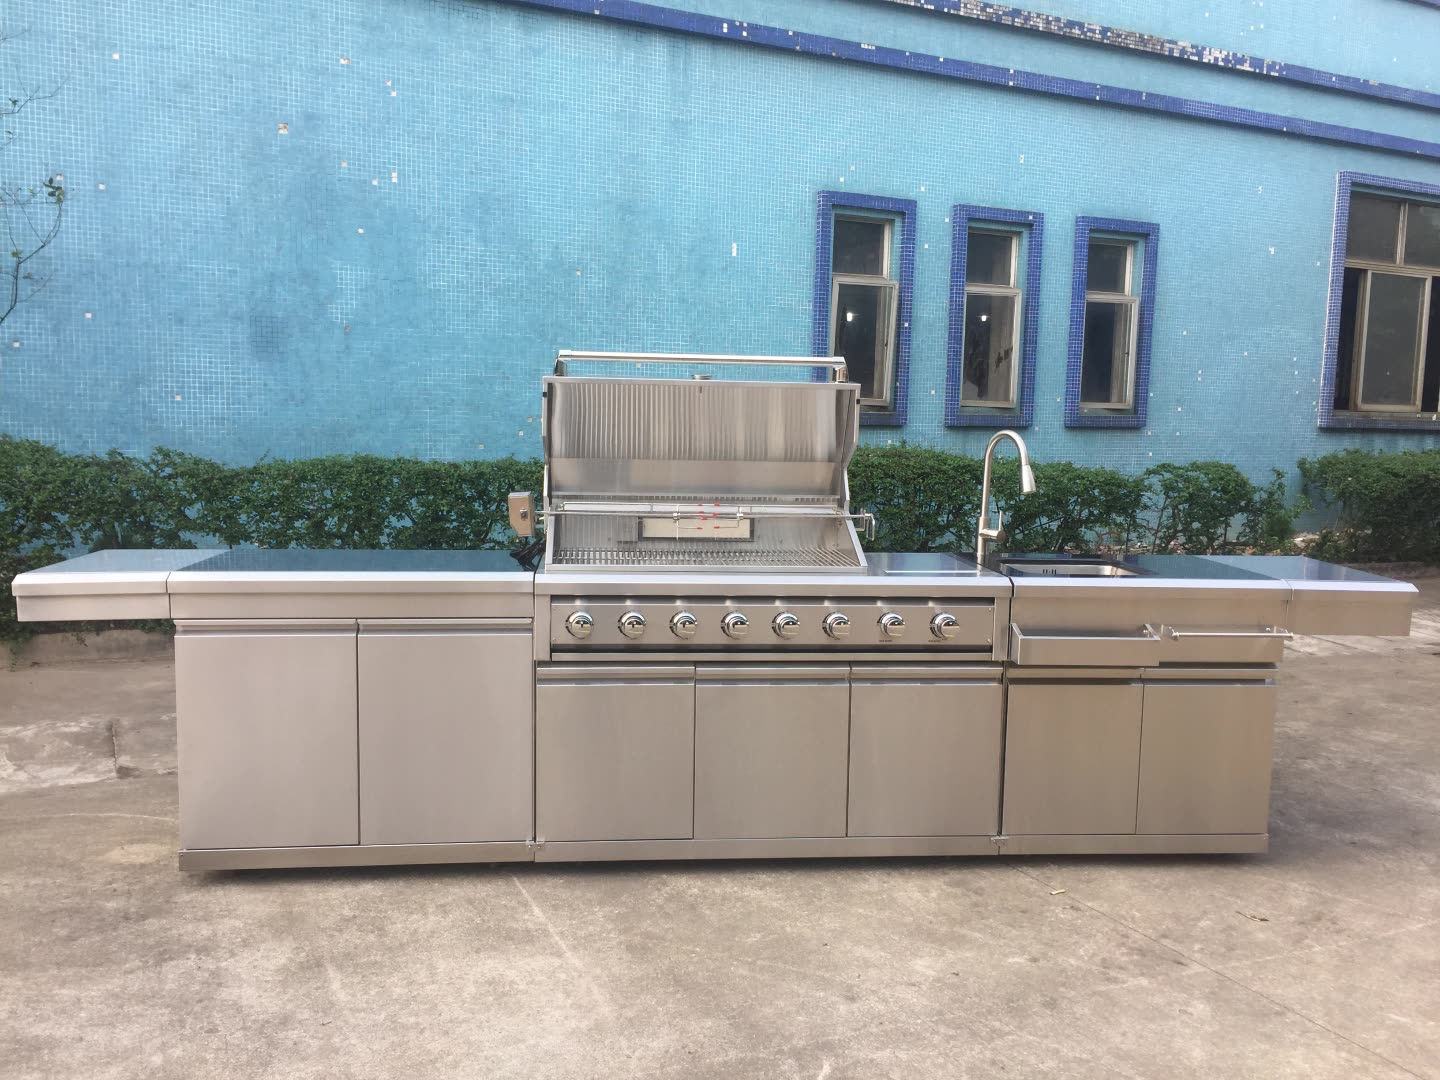 Cheap modern bbq cabinet barbecue gas grill outdoor bbq kitchens islands made in China